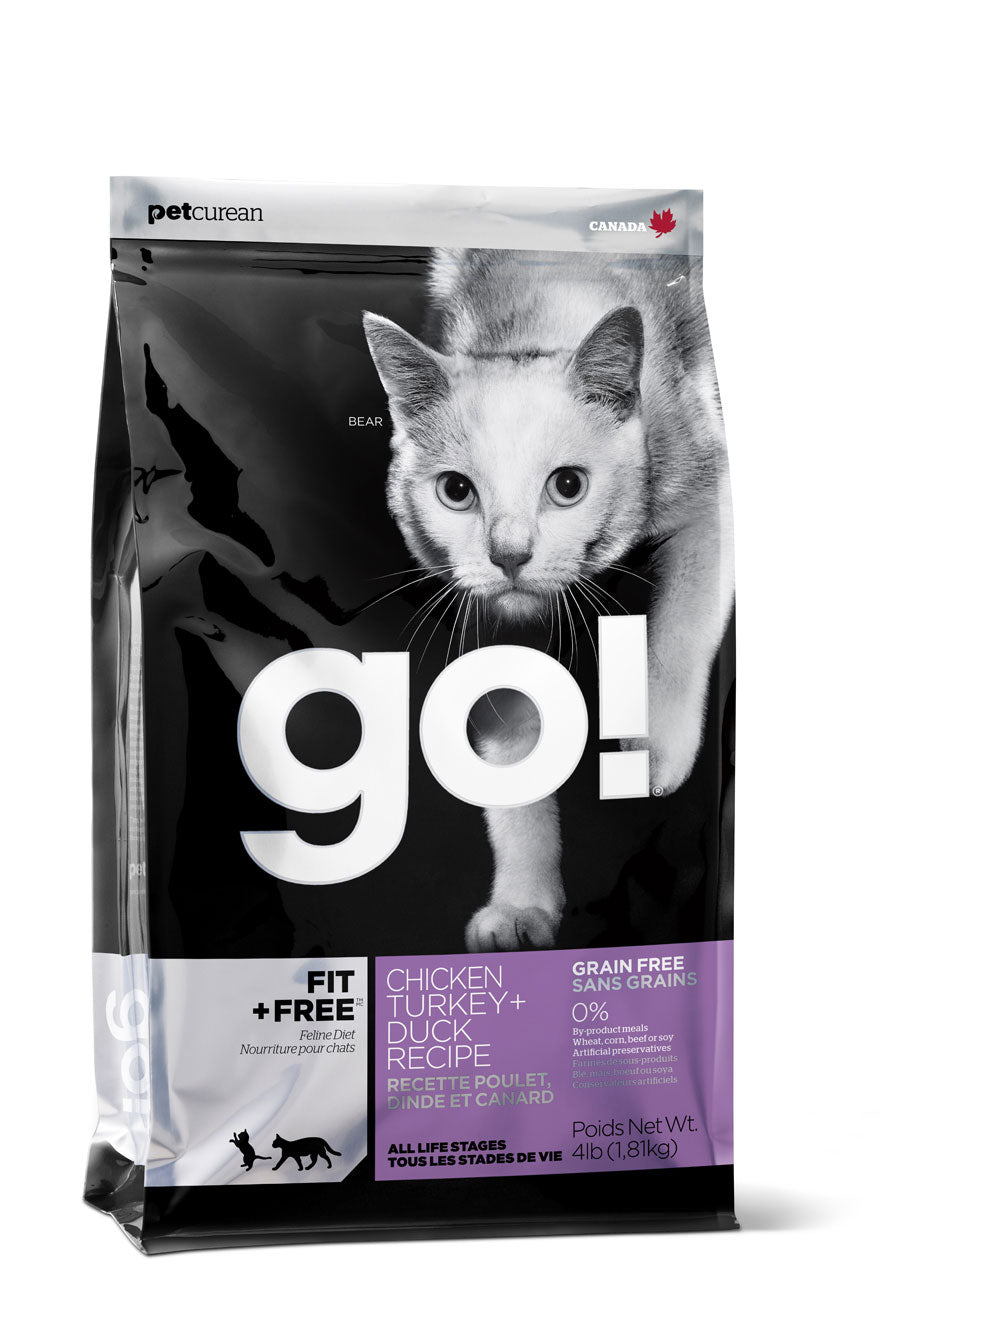 Petcurean Go! Fit and Free Grain Free Chicken, Turkey and Duck Dry Cat Food